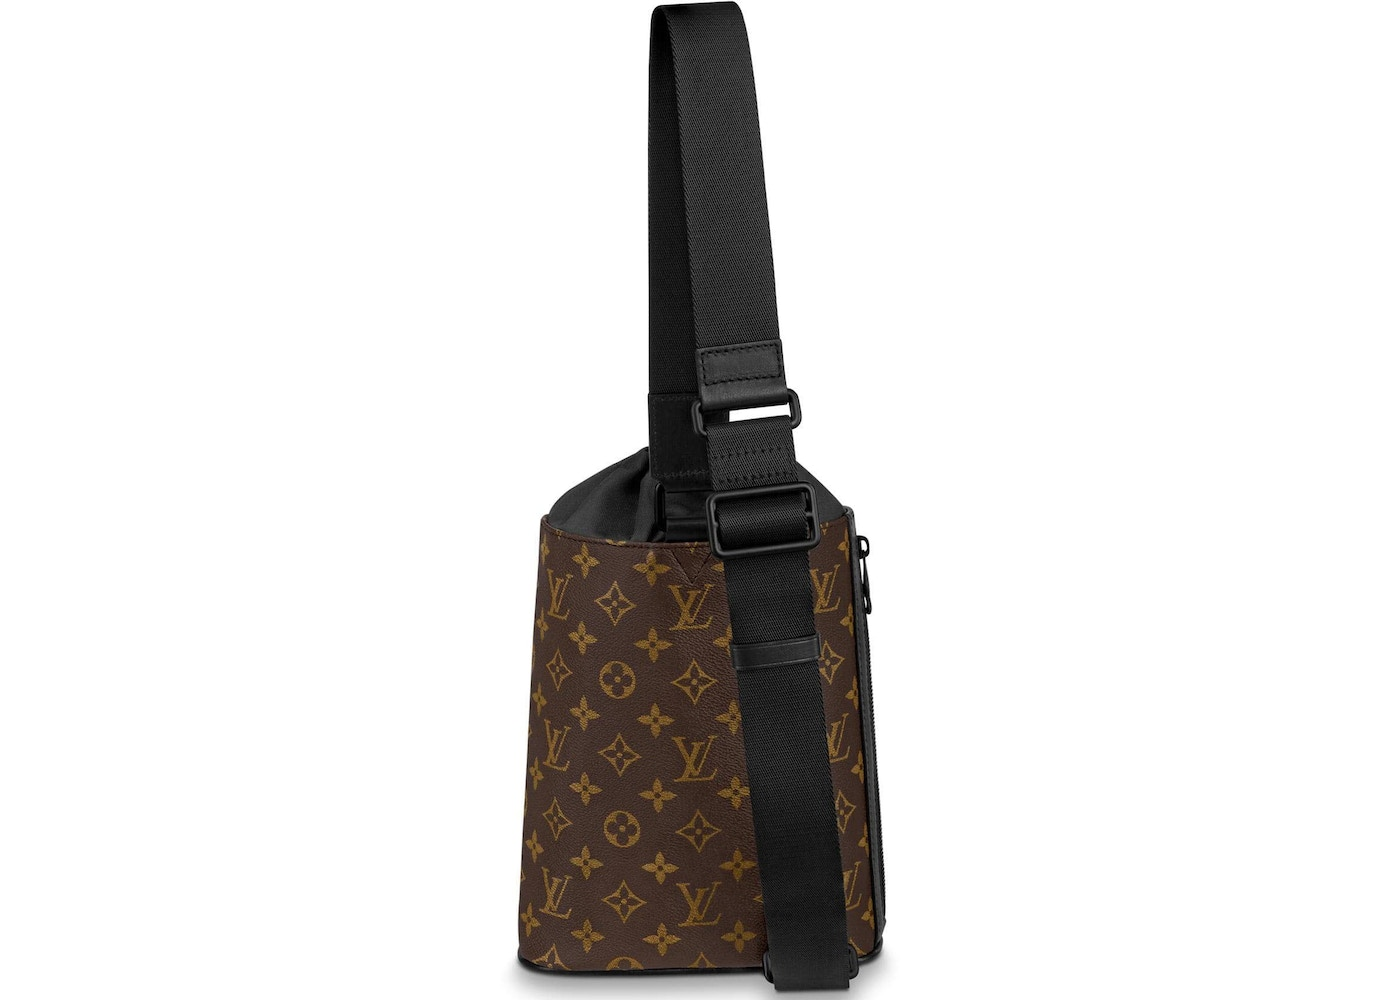 923af4155b95a Buy   Sell Luxury Handbags - New Lowest Asks